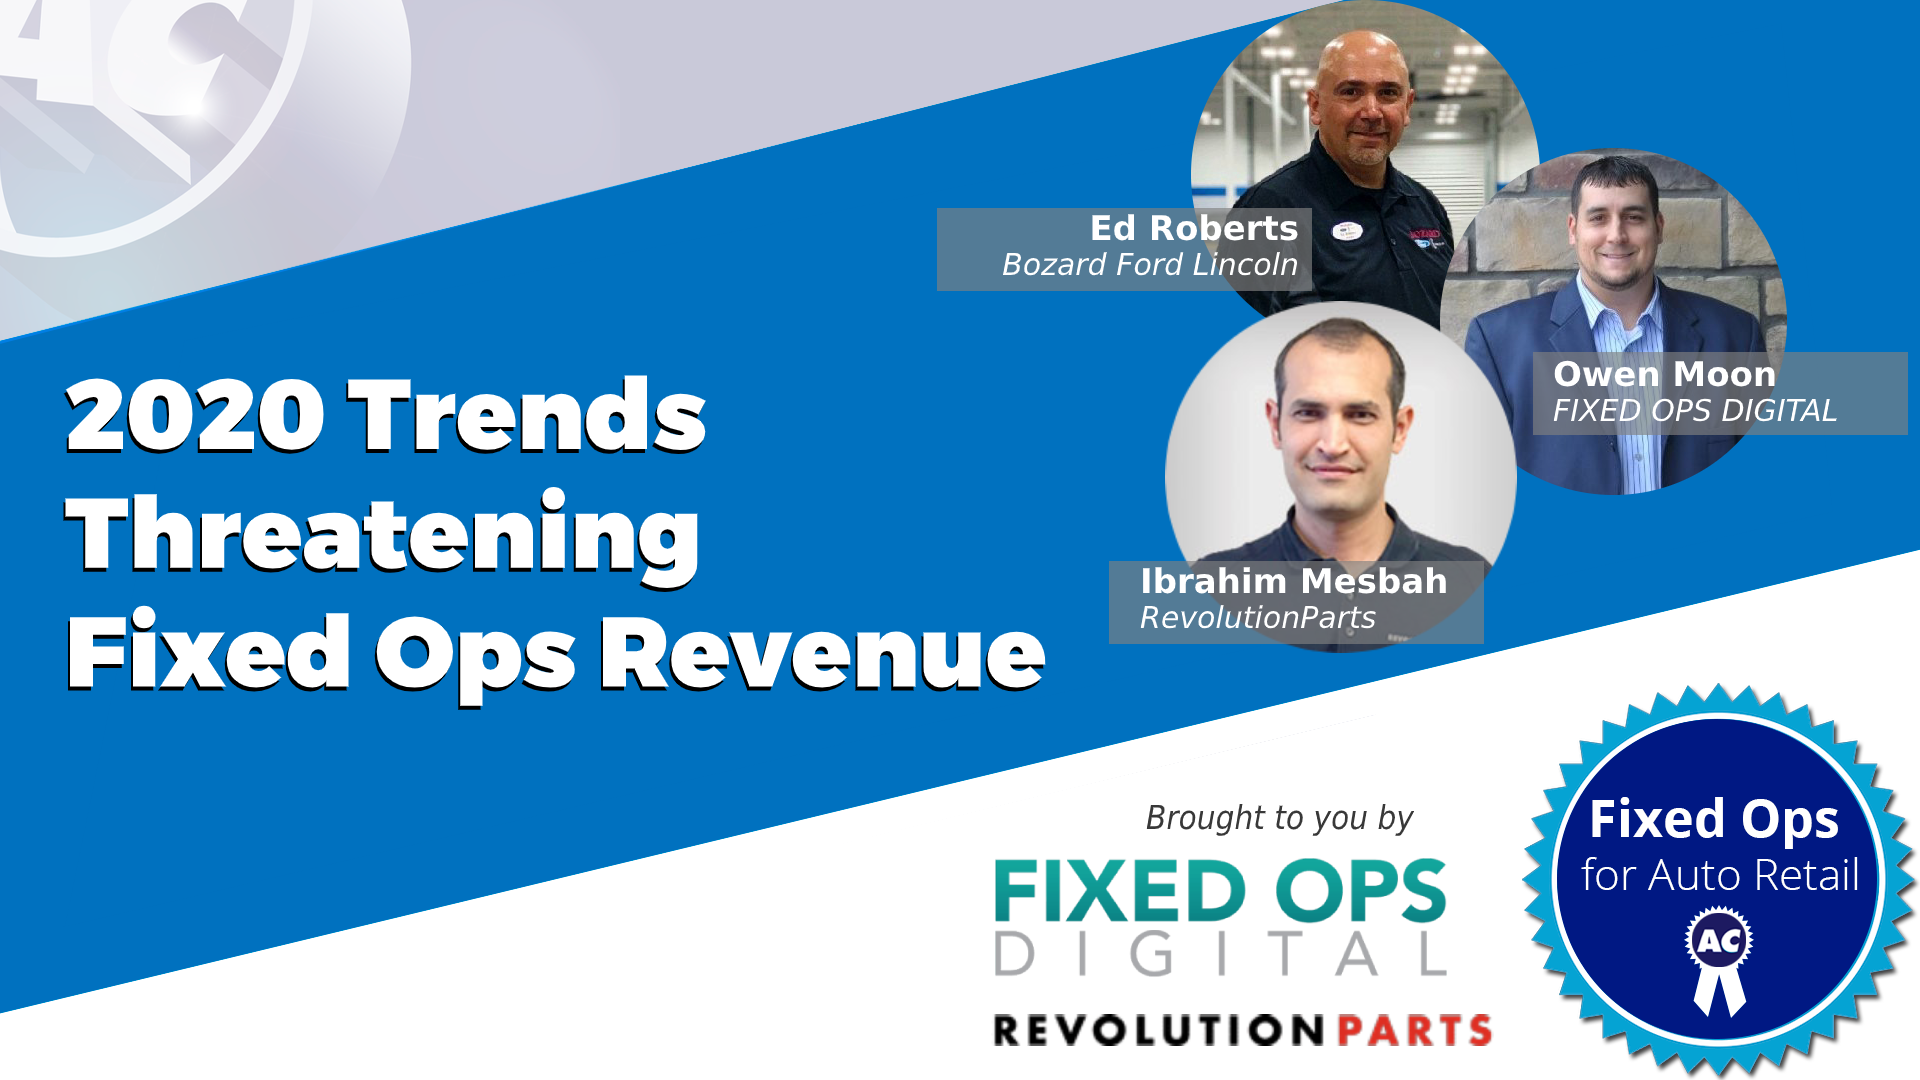 TUE SEP 24 – 2020 Trends Threatening Fixed Ops Revenue – Live Web Chat